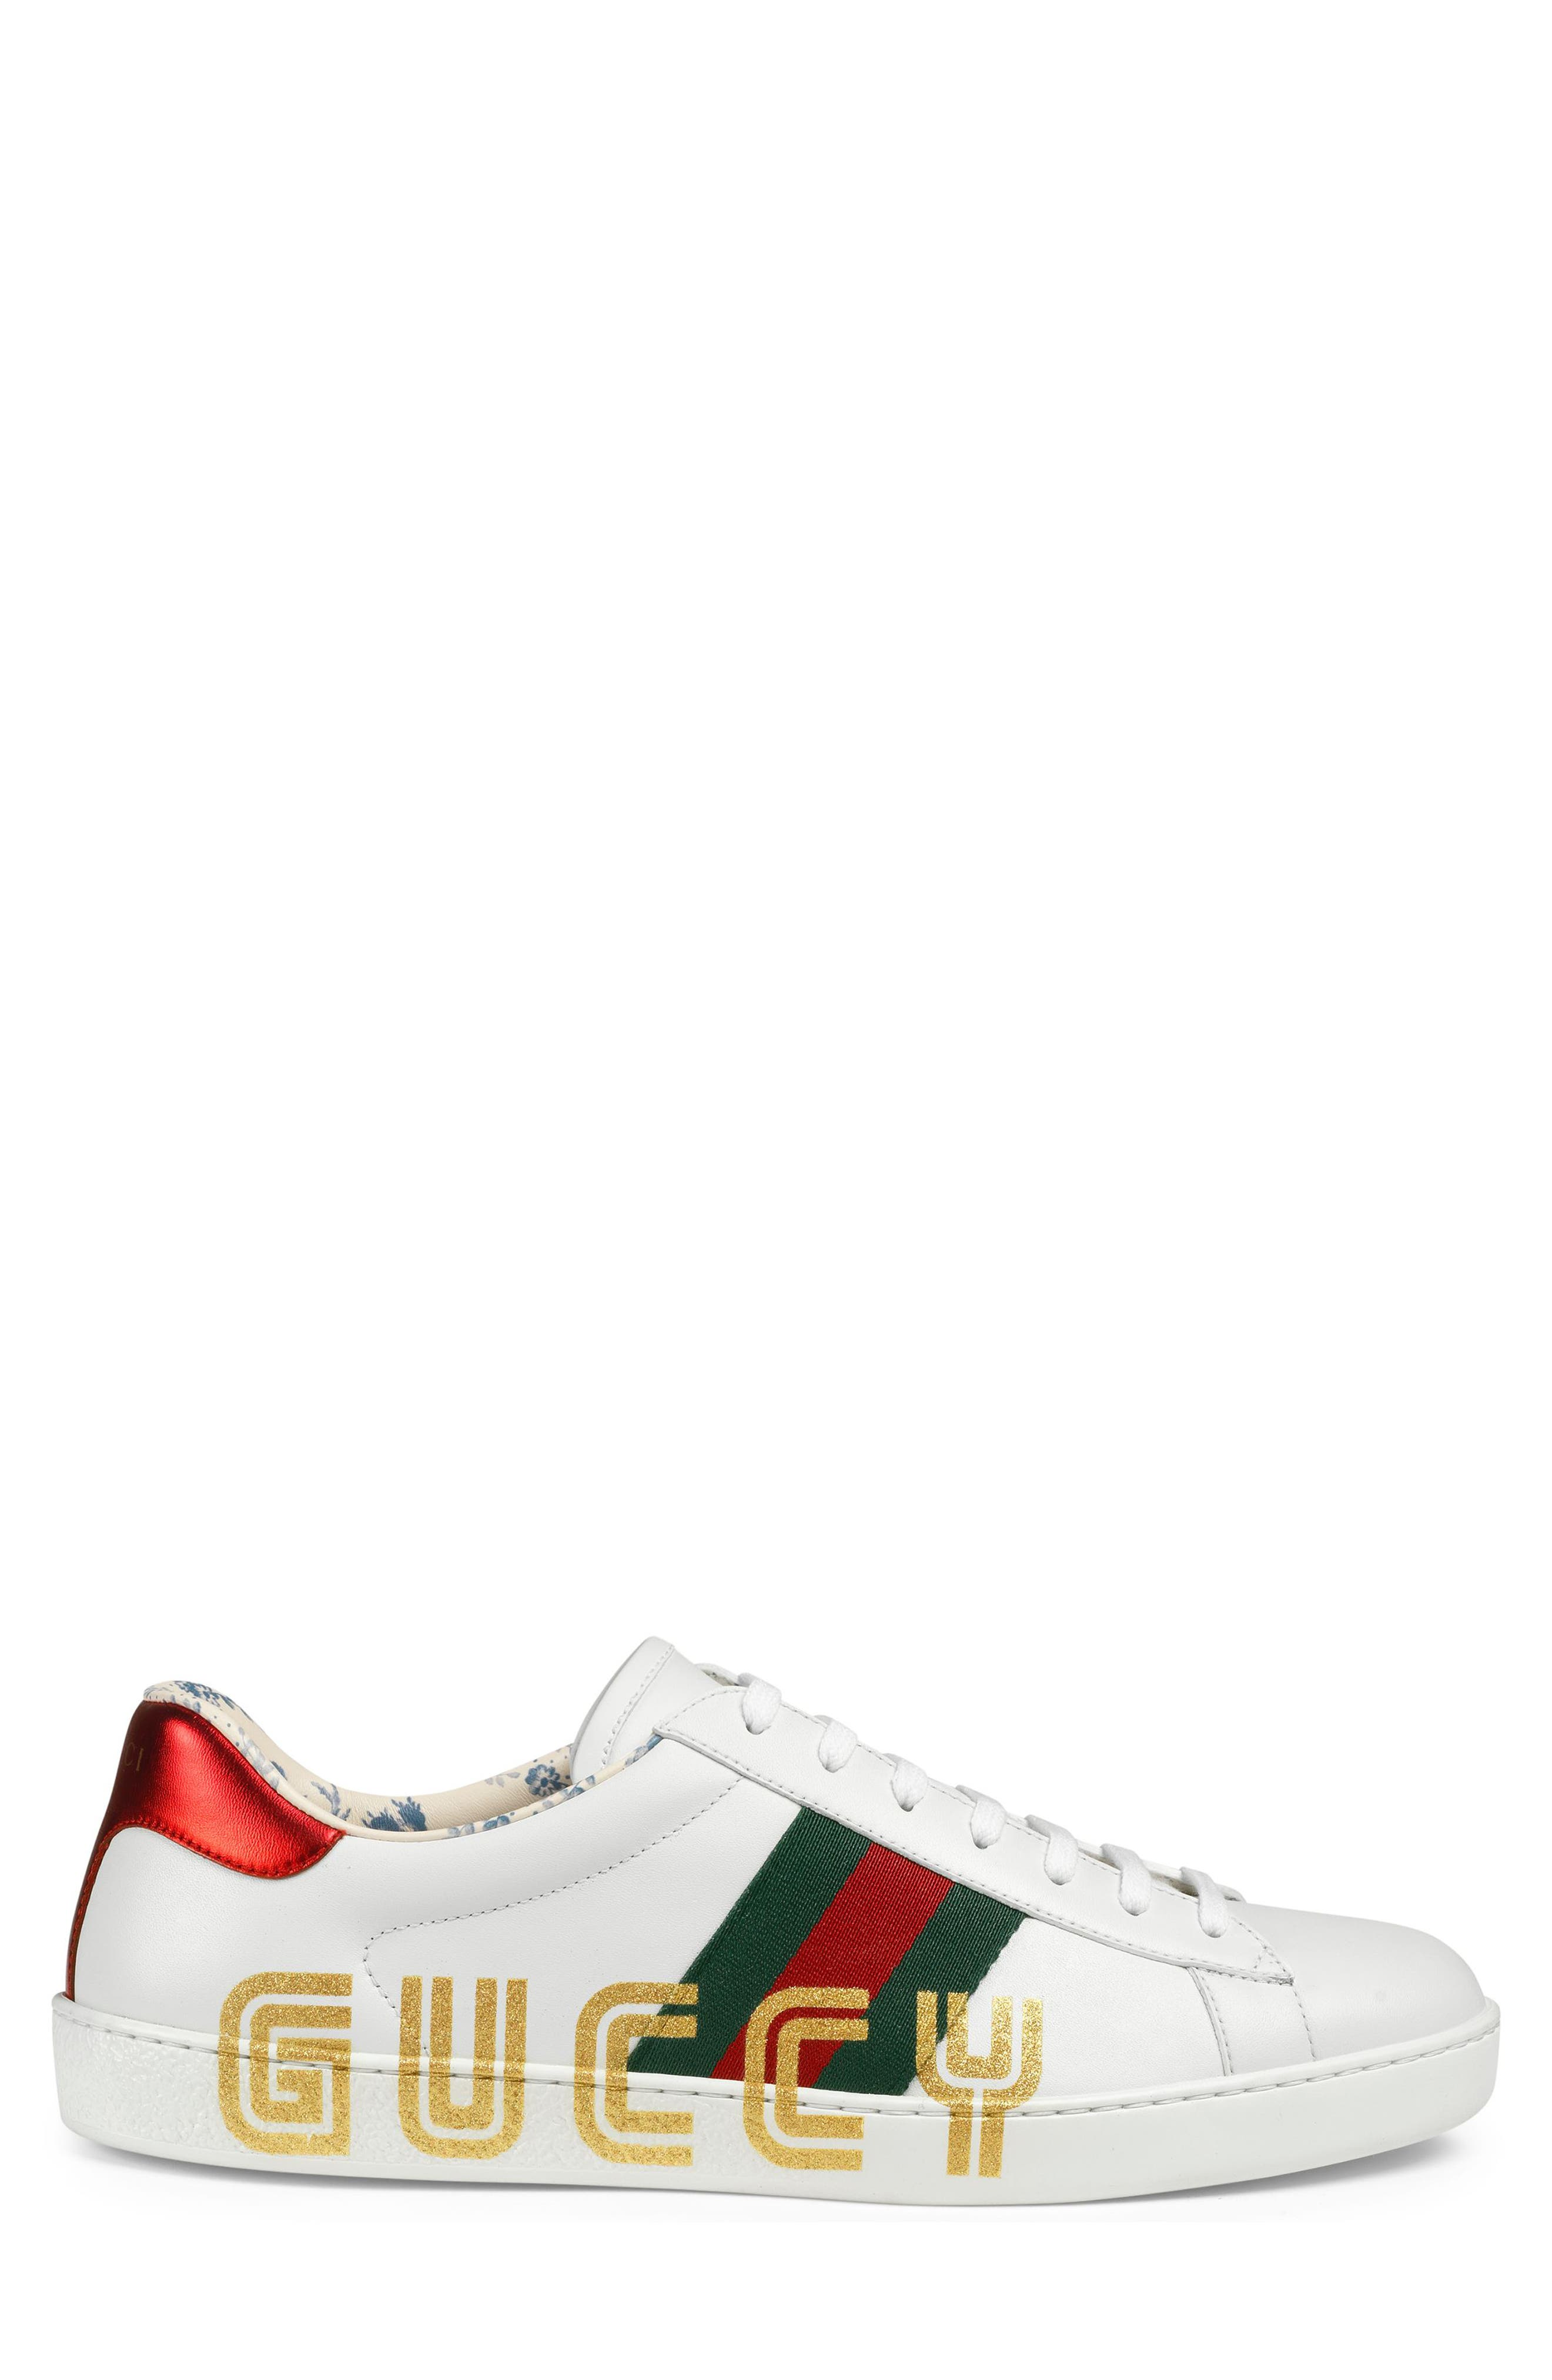 New Ace Guccy Print Sneaker,                             Alternate thumbnail 2, color,                             WHITE/ RED FLAME